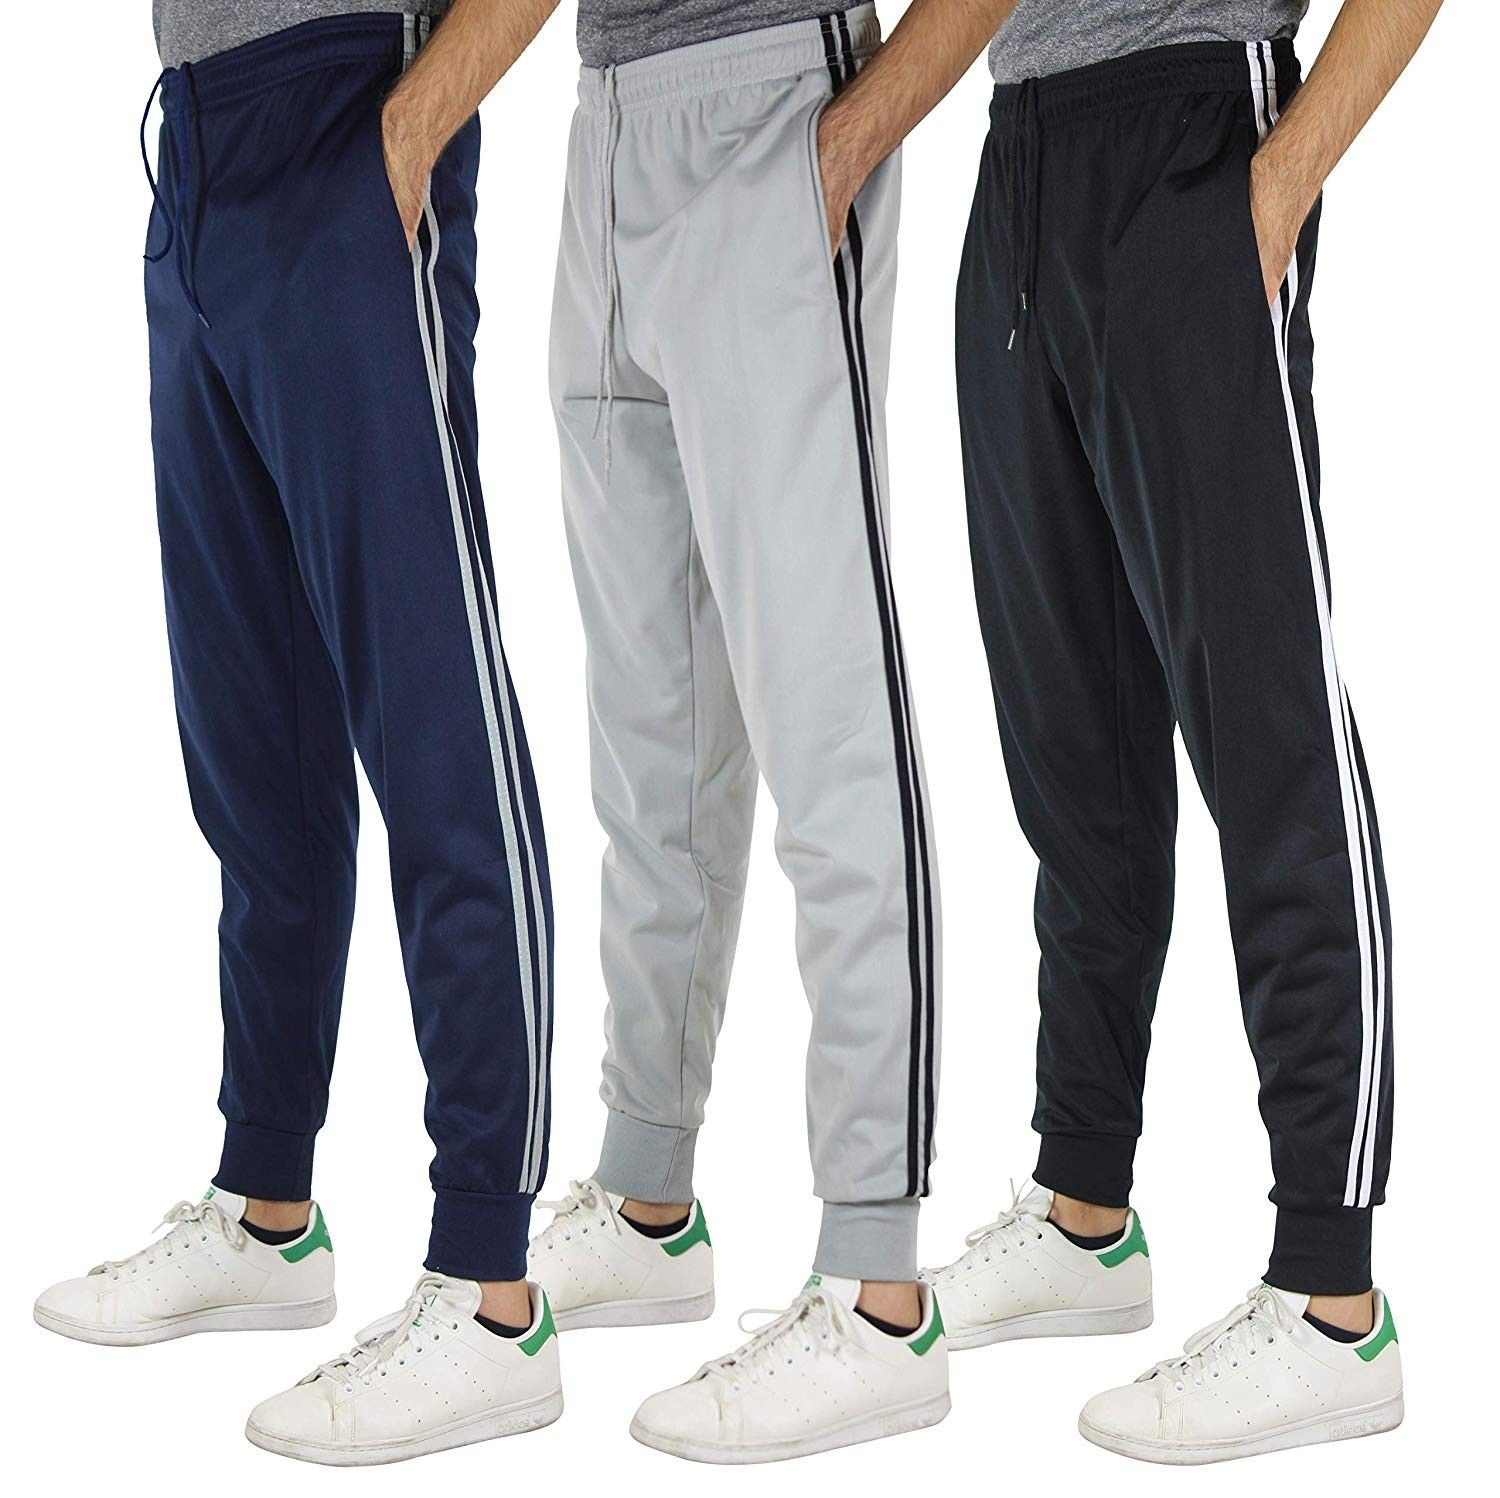 3 Pack: Men's Active Athletic Casual Jogger Sweatpants with Pockets - Set 2  - CT18H9OXNC4 Size Small | Casual joggers, Men sport pants, Jogger  sweatpants